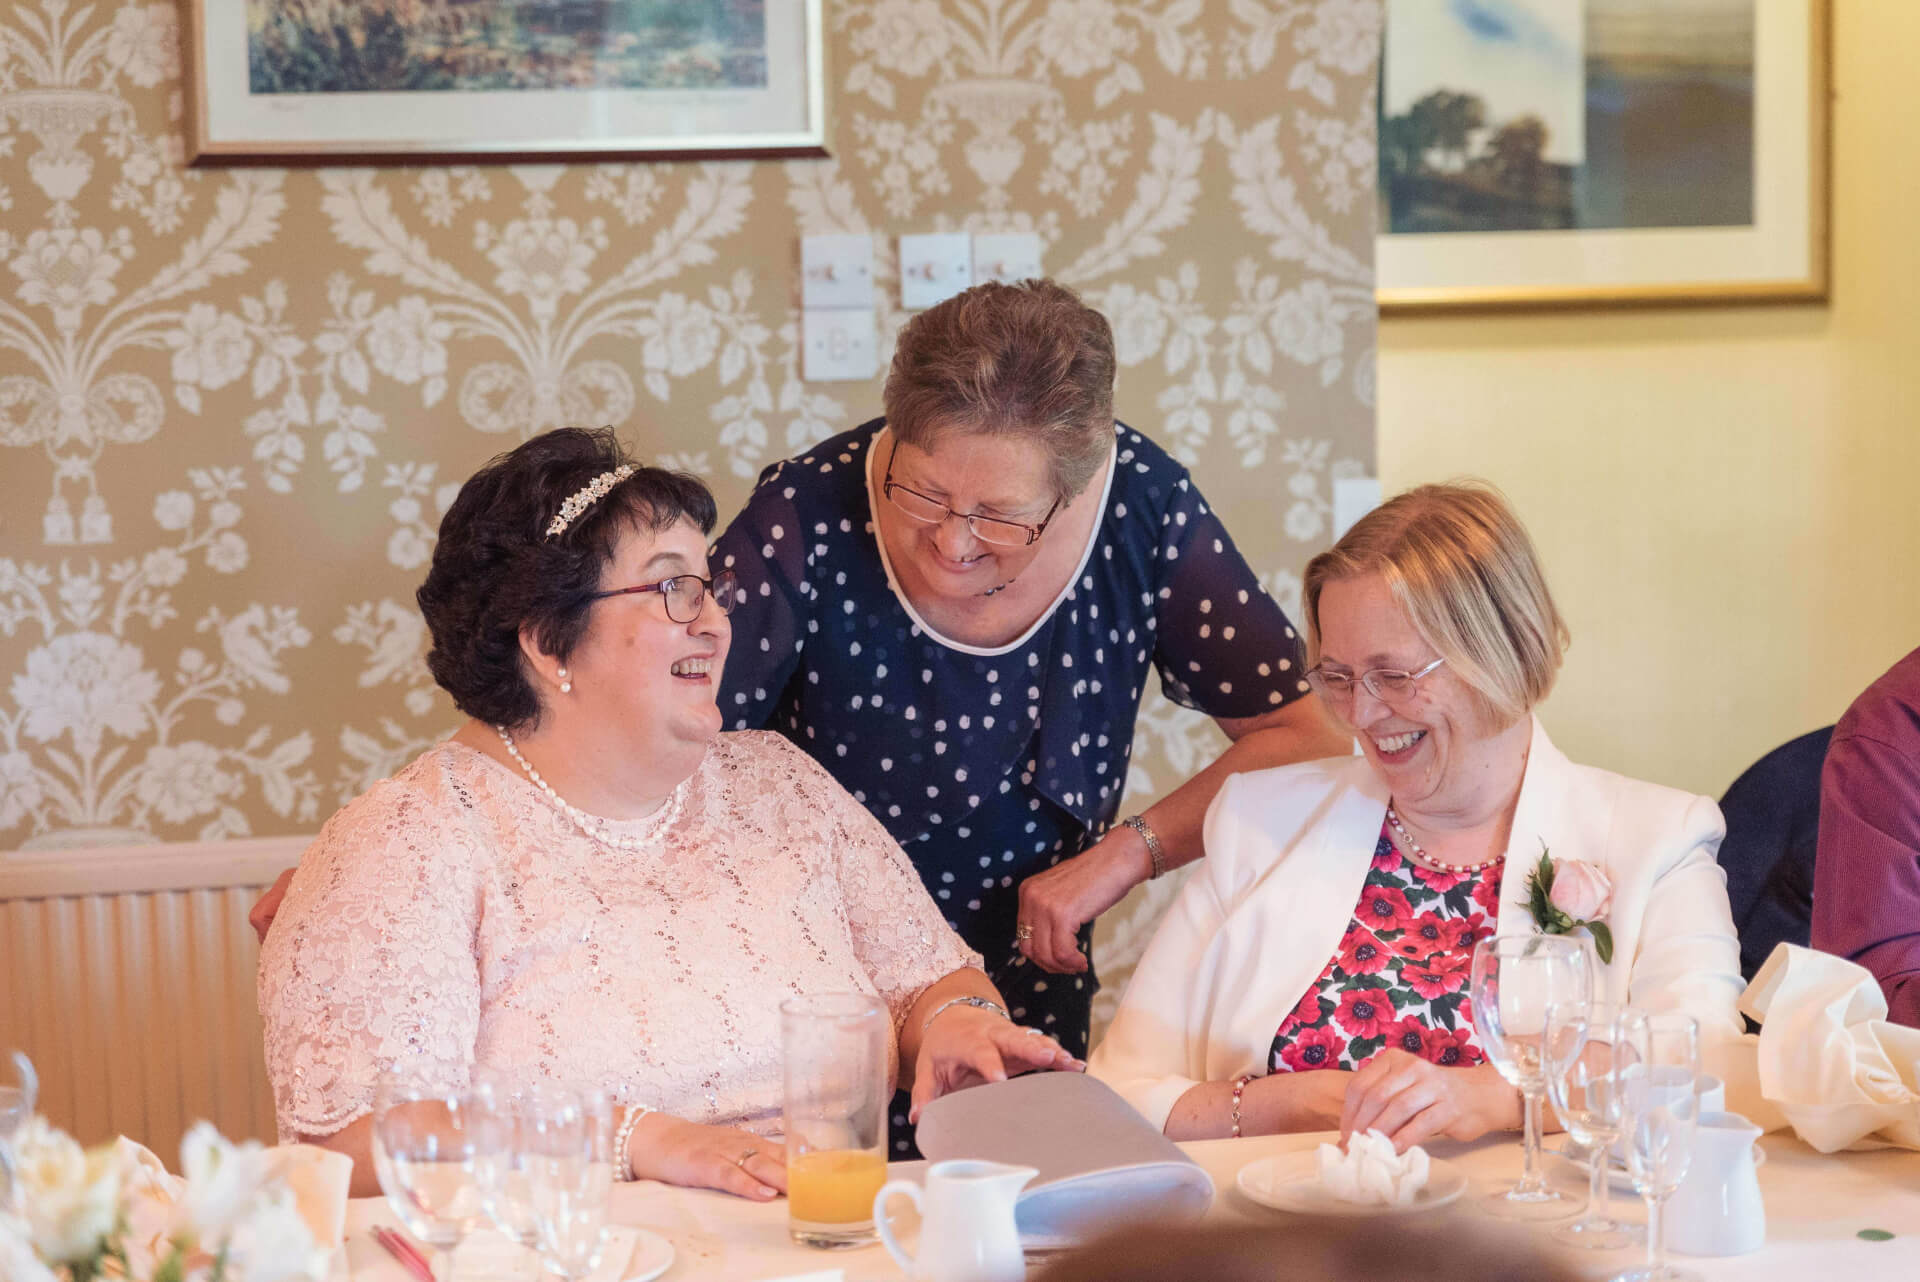 Bride and friends laughing during wedding reception - wedding photography by Slice of Life Photography